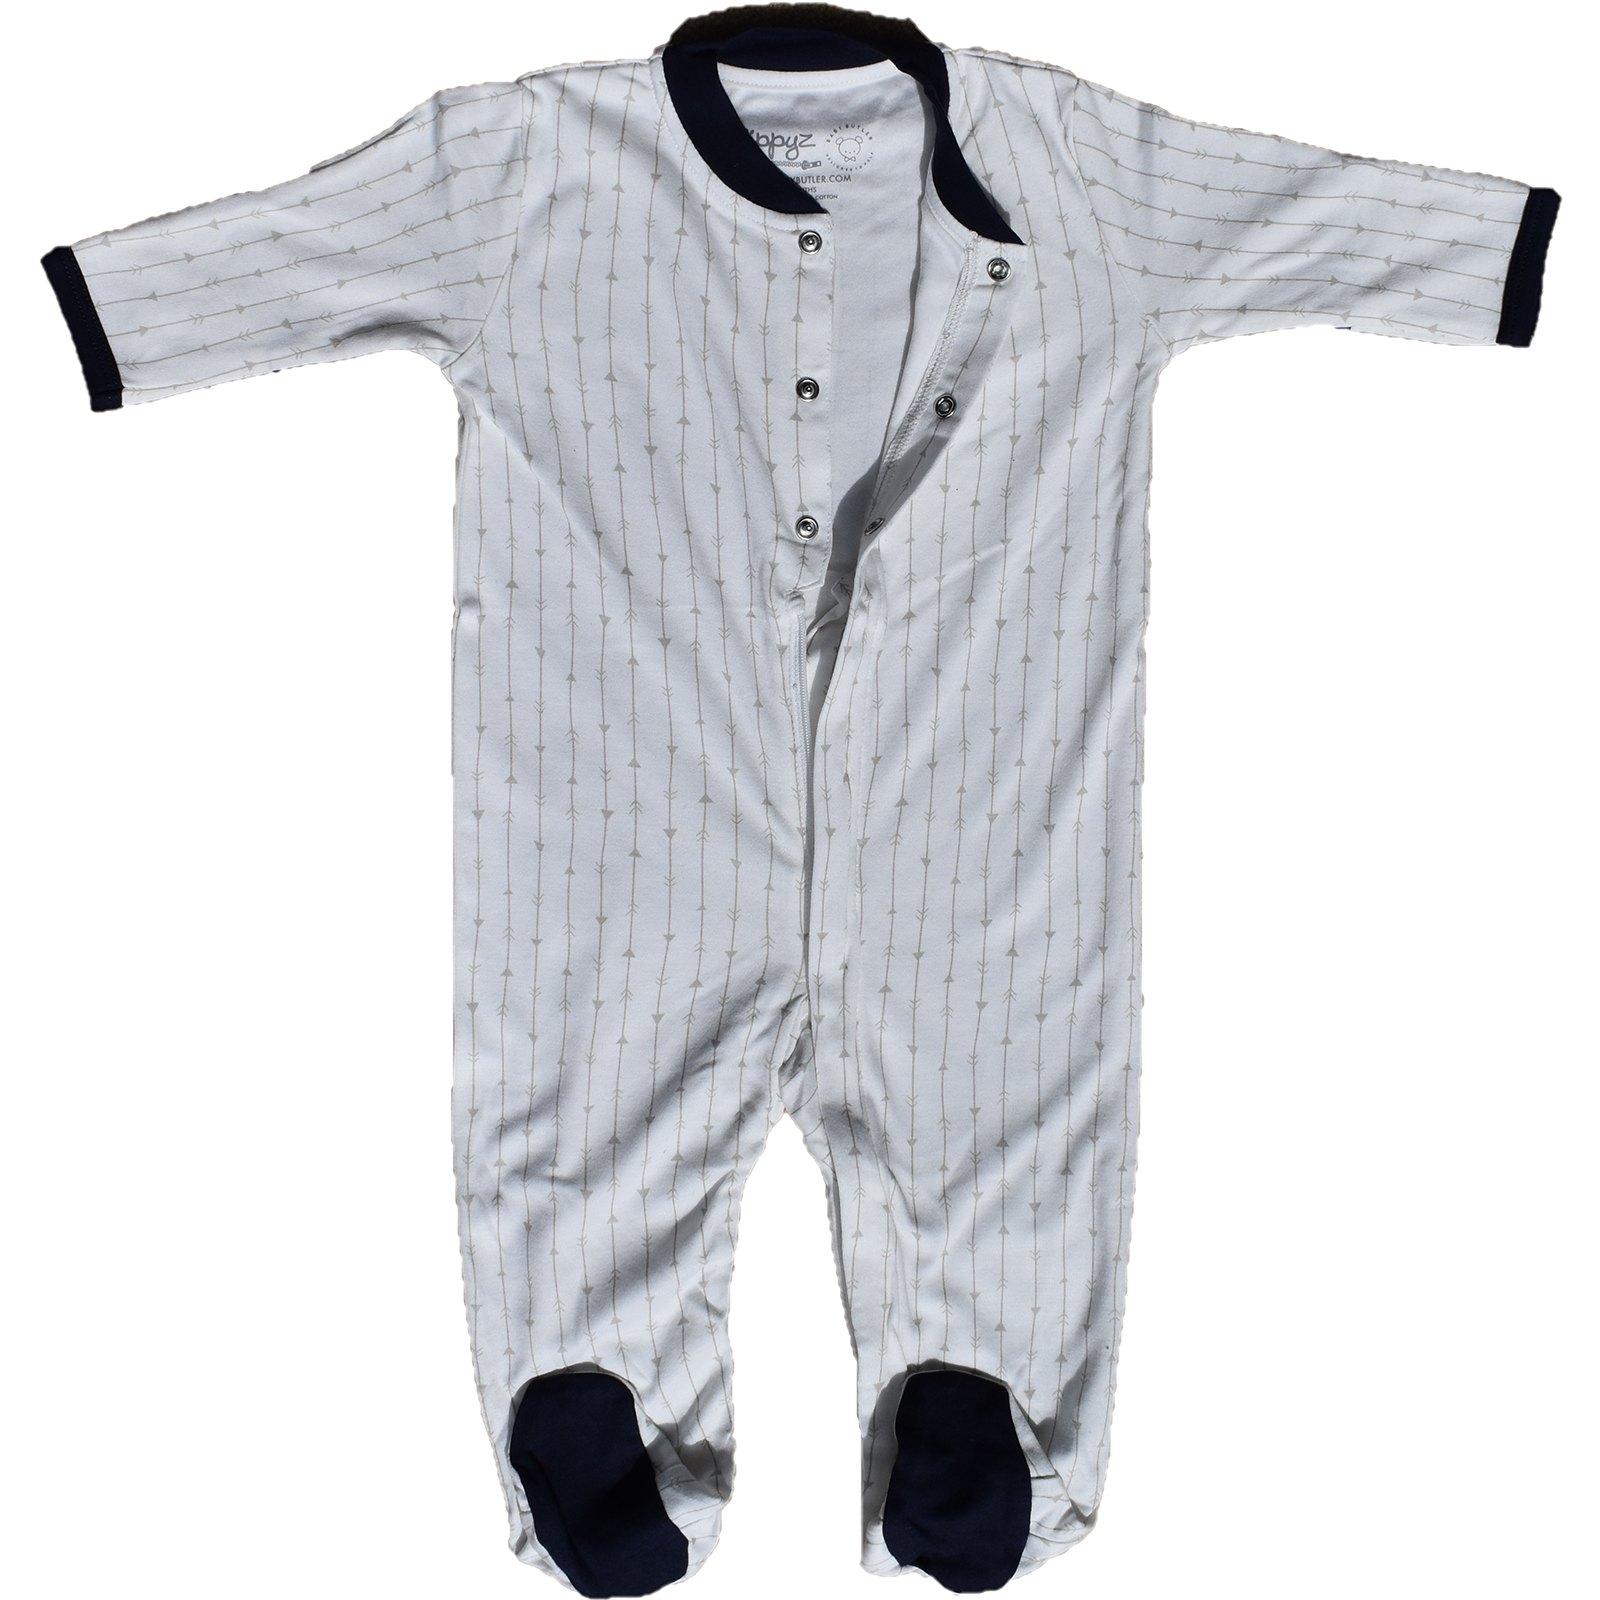 Zippyz Pajamas - Grey Arrows